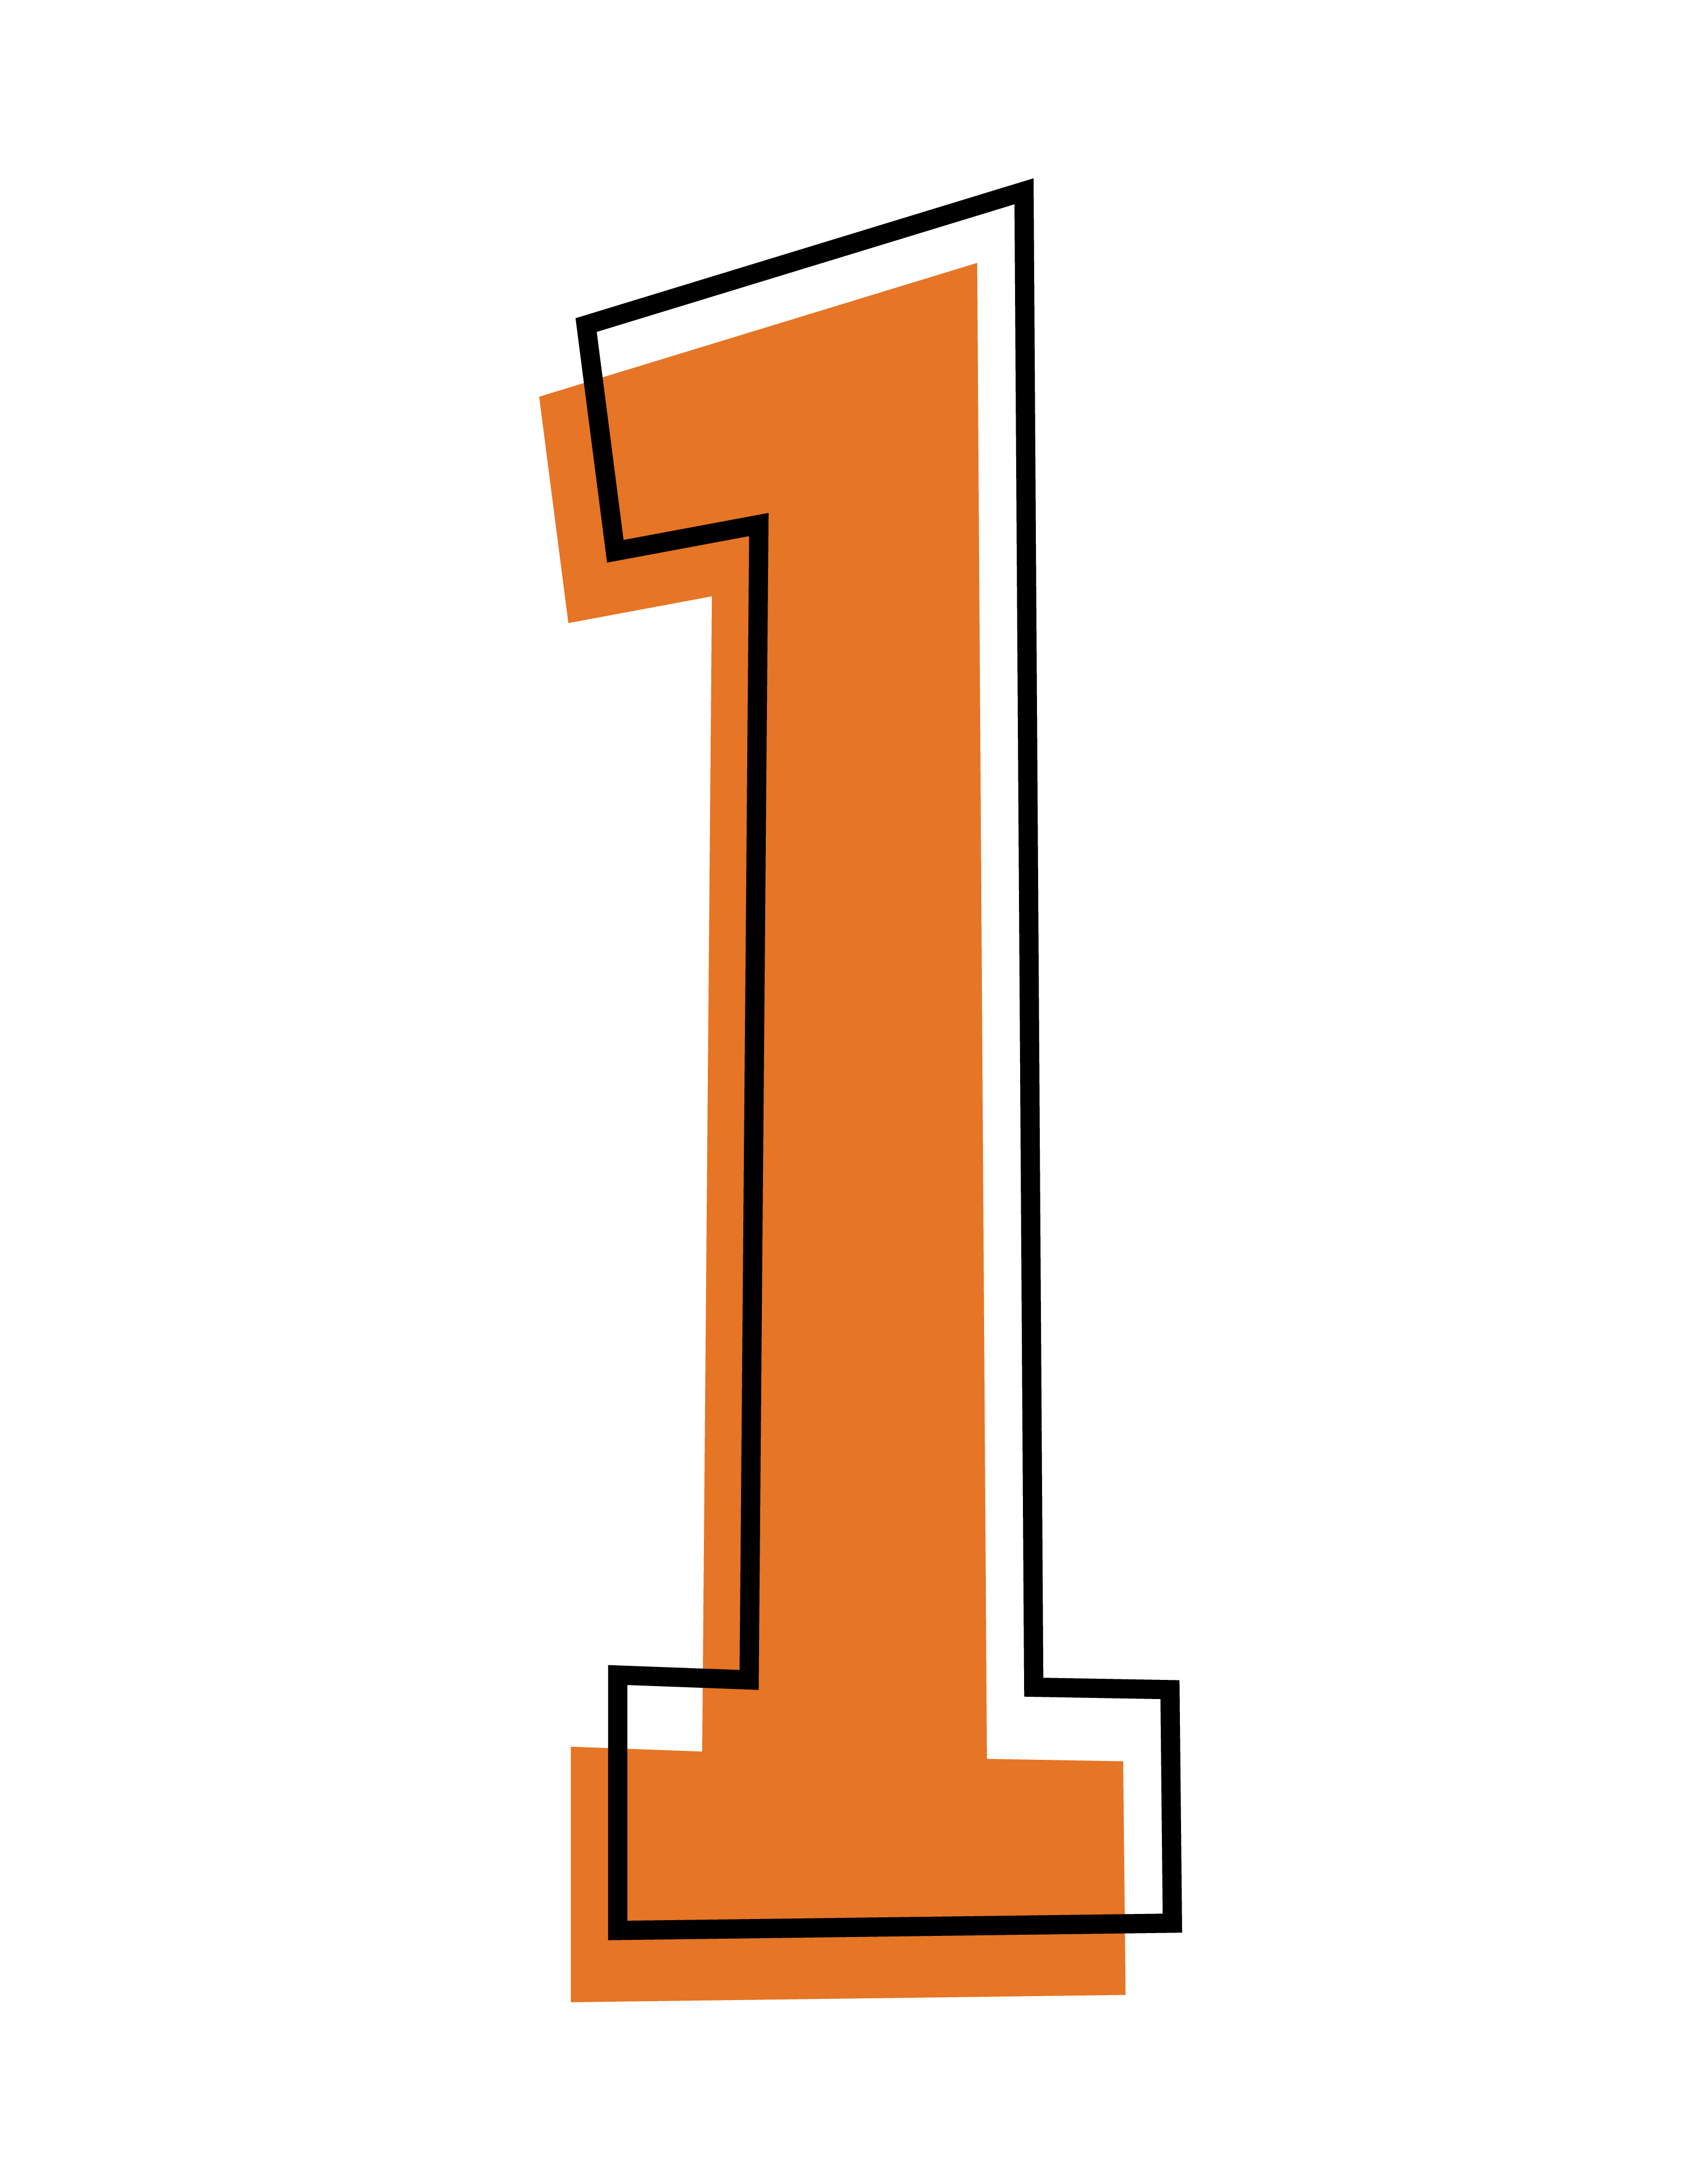 Number 1 clipart orange.  collection of transparent